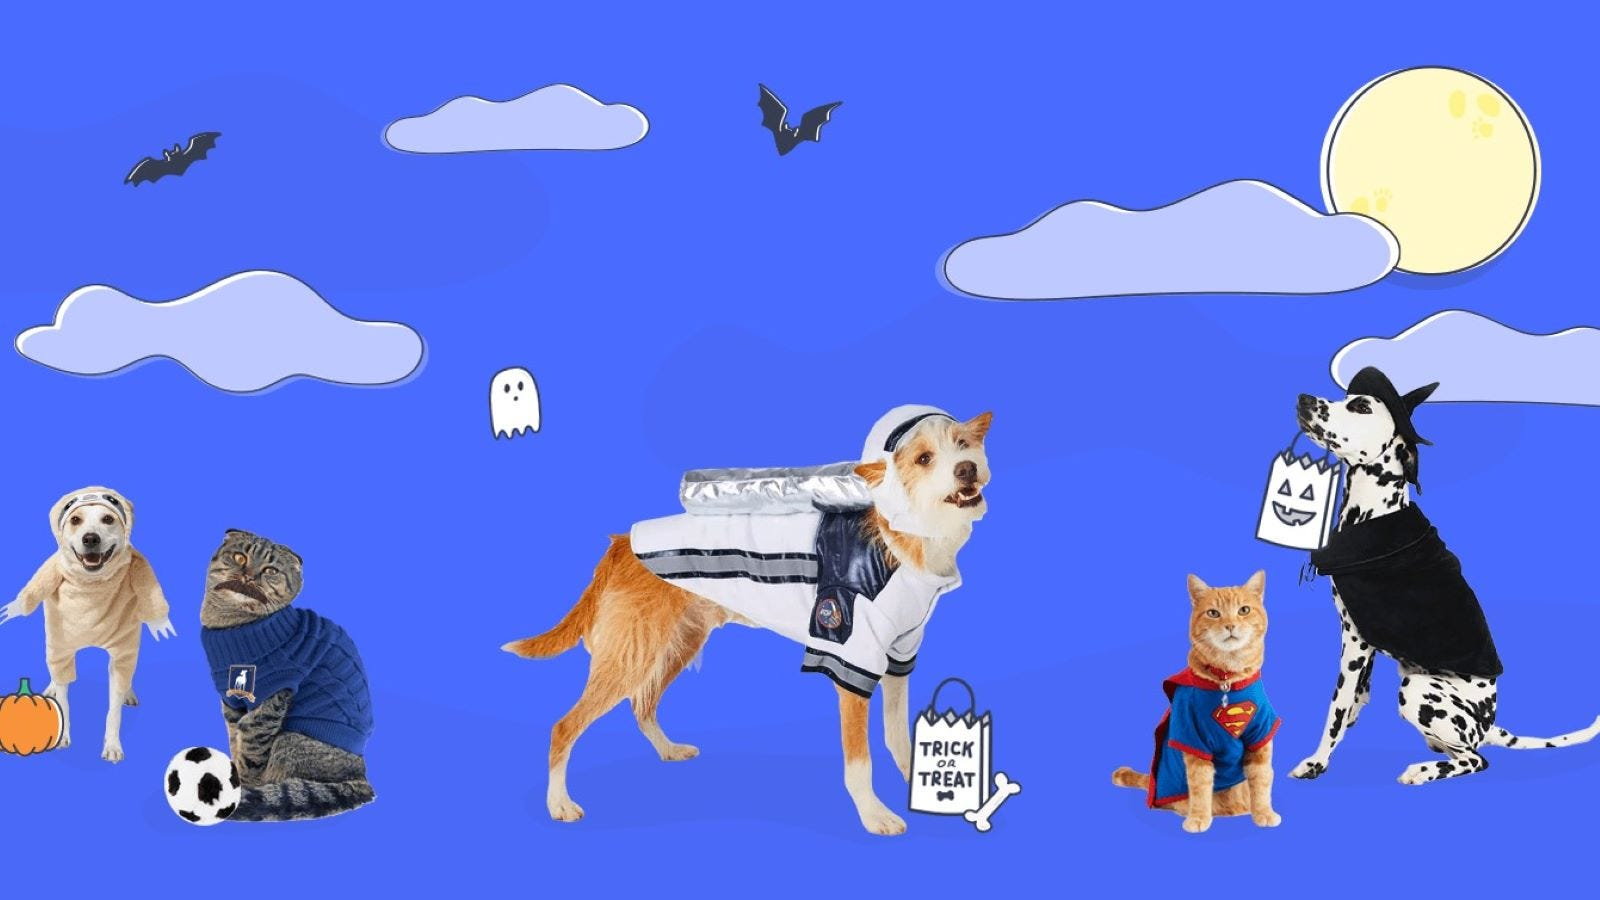 Dog and cats in various Halloween costumes.